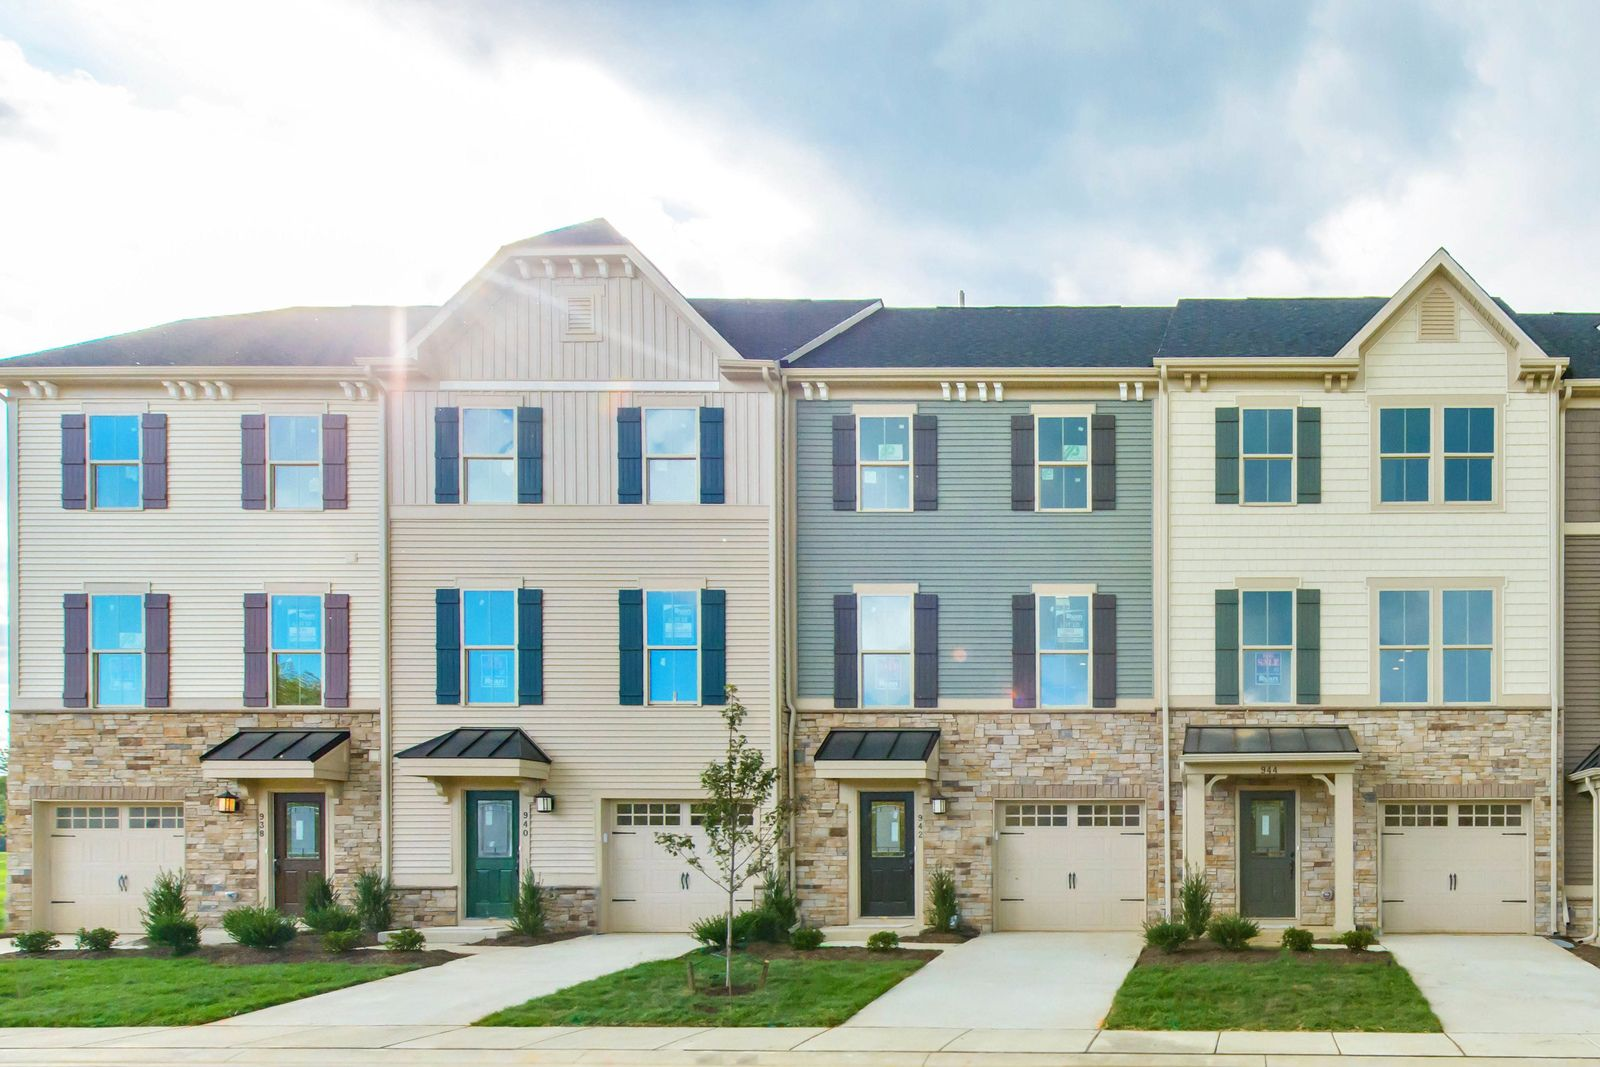 Aspen Woods - New Townhomes Coming Early 2021:The most affordable 3 bedroom townhomes in Union Township! Located inside the I-275 loop near Rt. 32. Starting from theupper $100s.Stay up-to-date with community news & join the VIP List here!